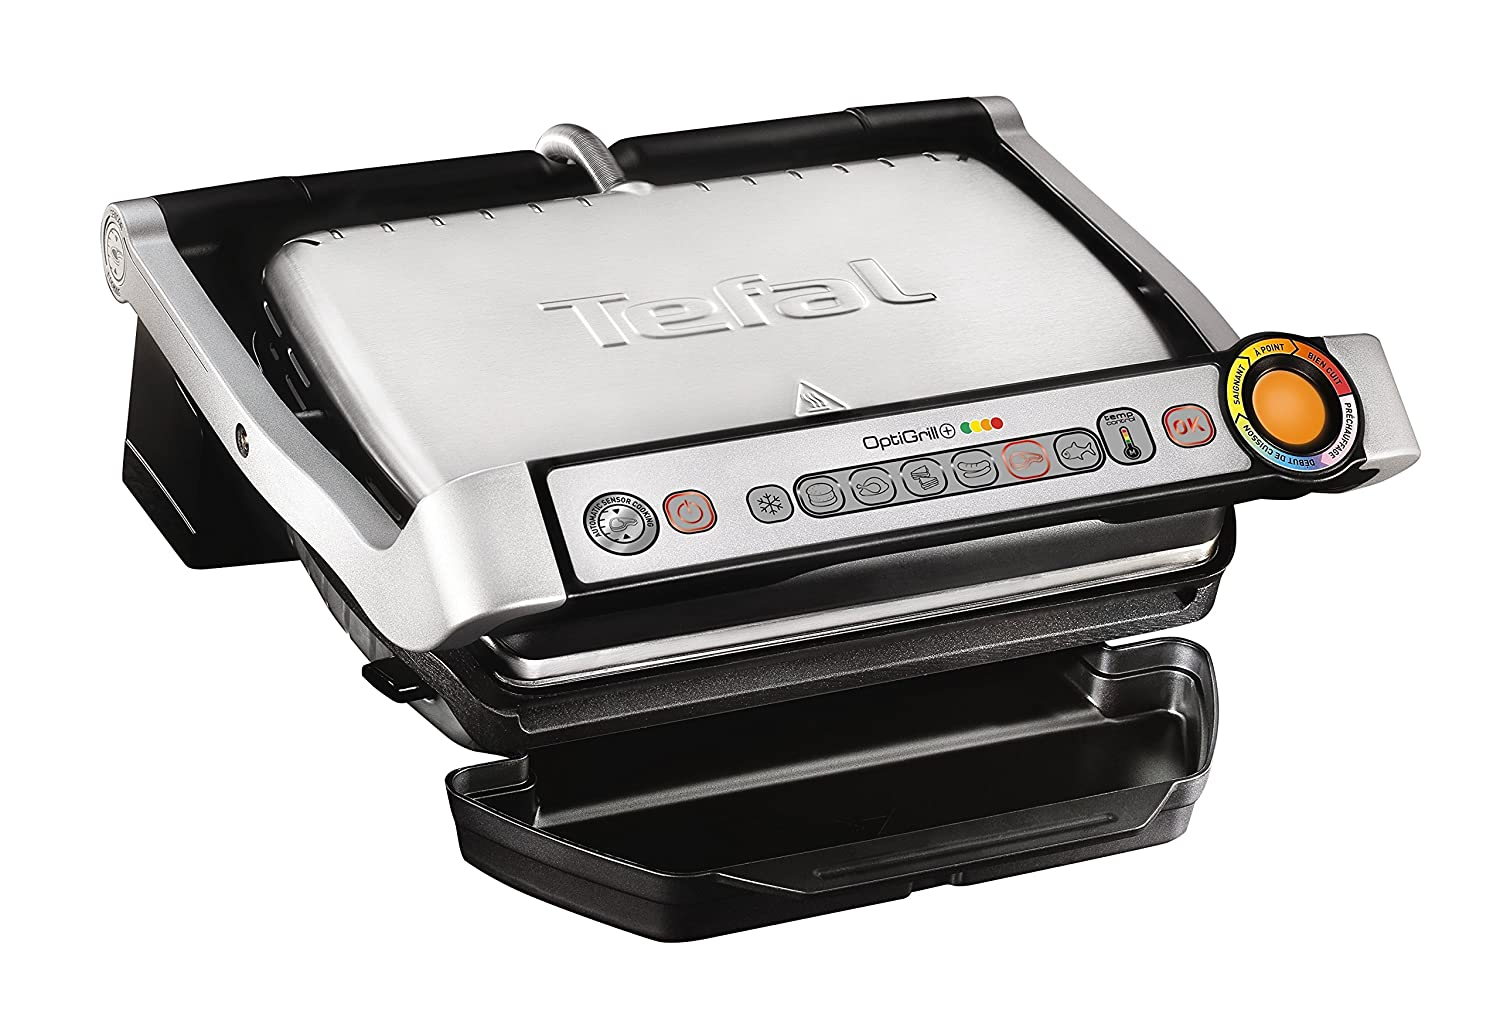 Tefal gc712d34 Grill Table Electric 2000 W 2000 W Titanium – Barbecue, Grill, Electric, 600 cm², Table, Grid)